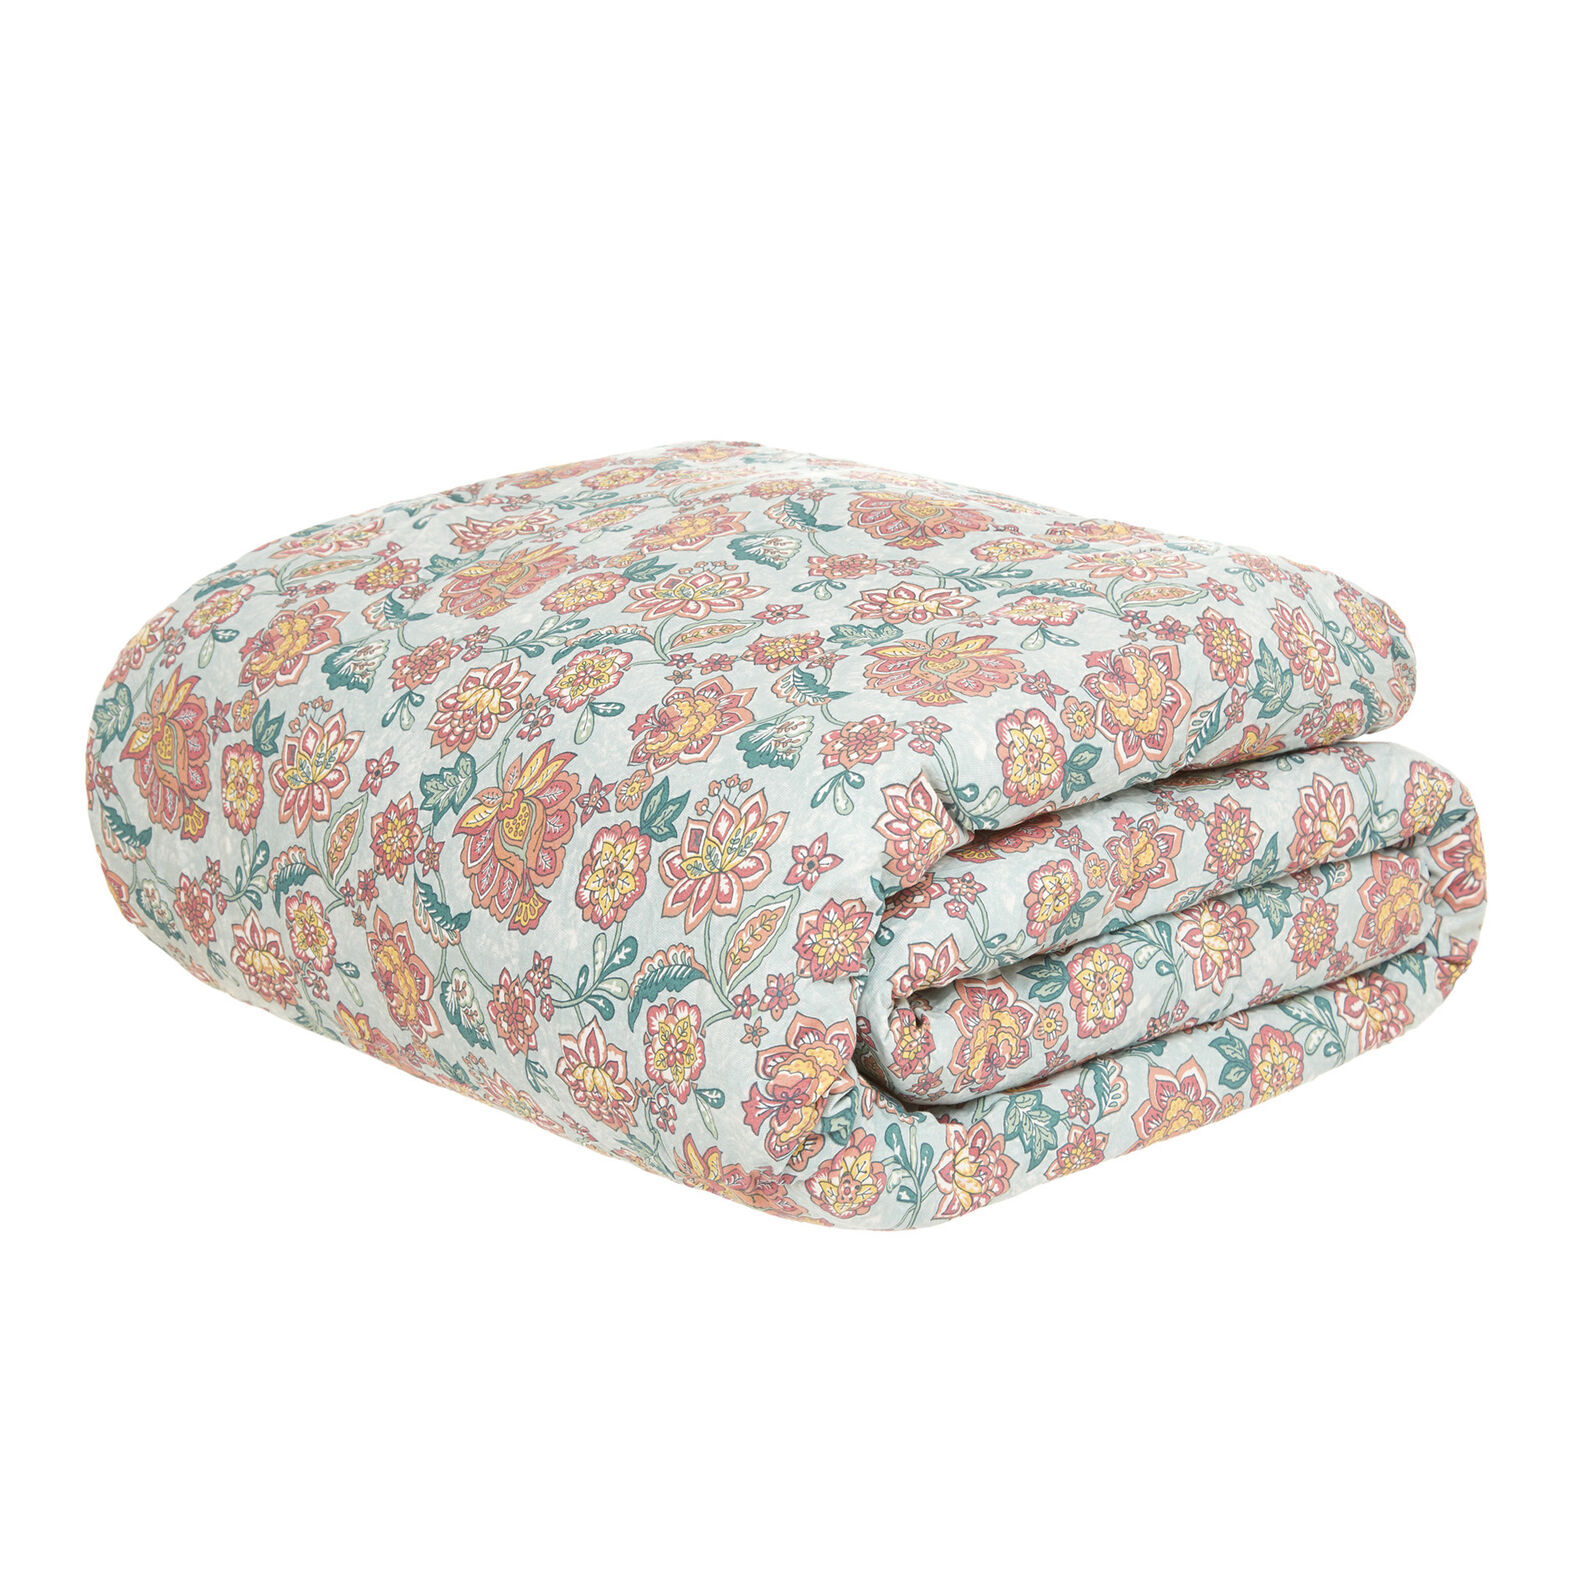 Organic cotton quilted throw with flower pattern